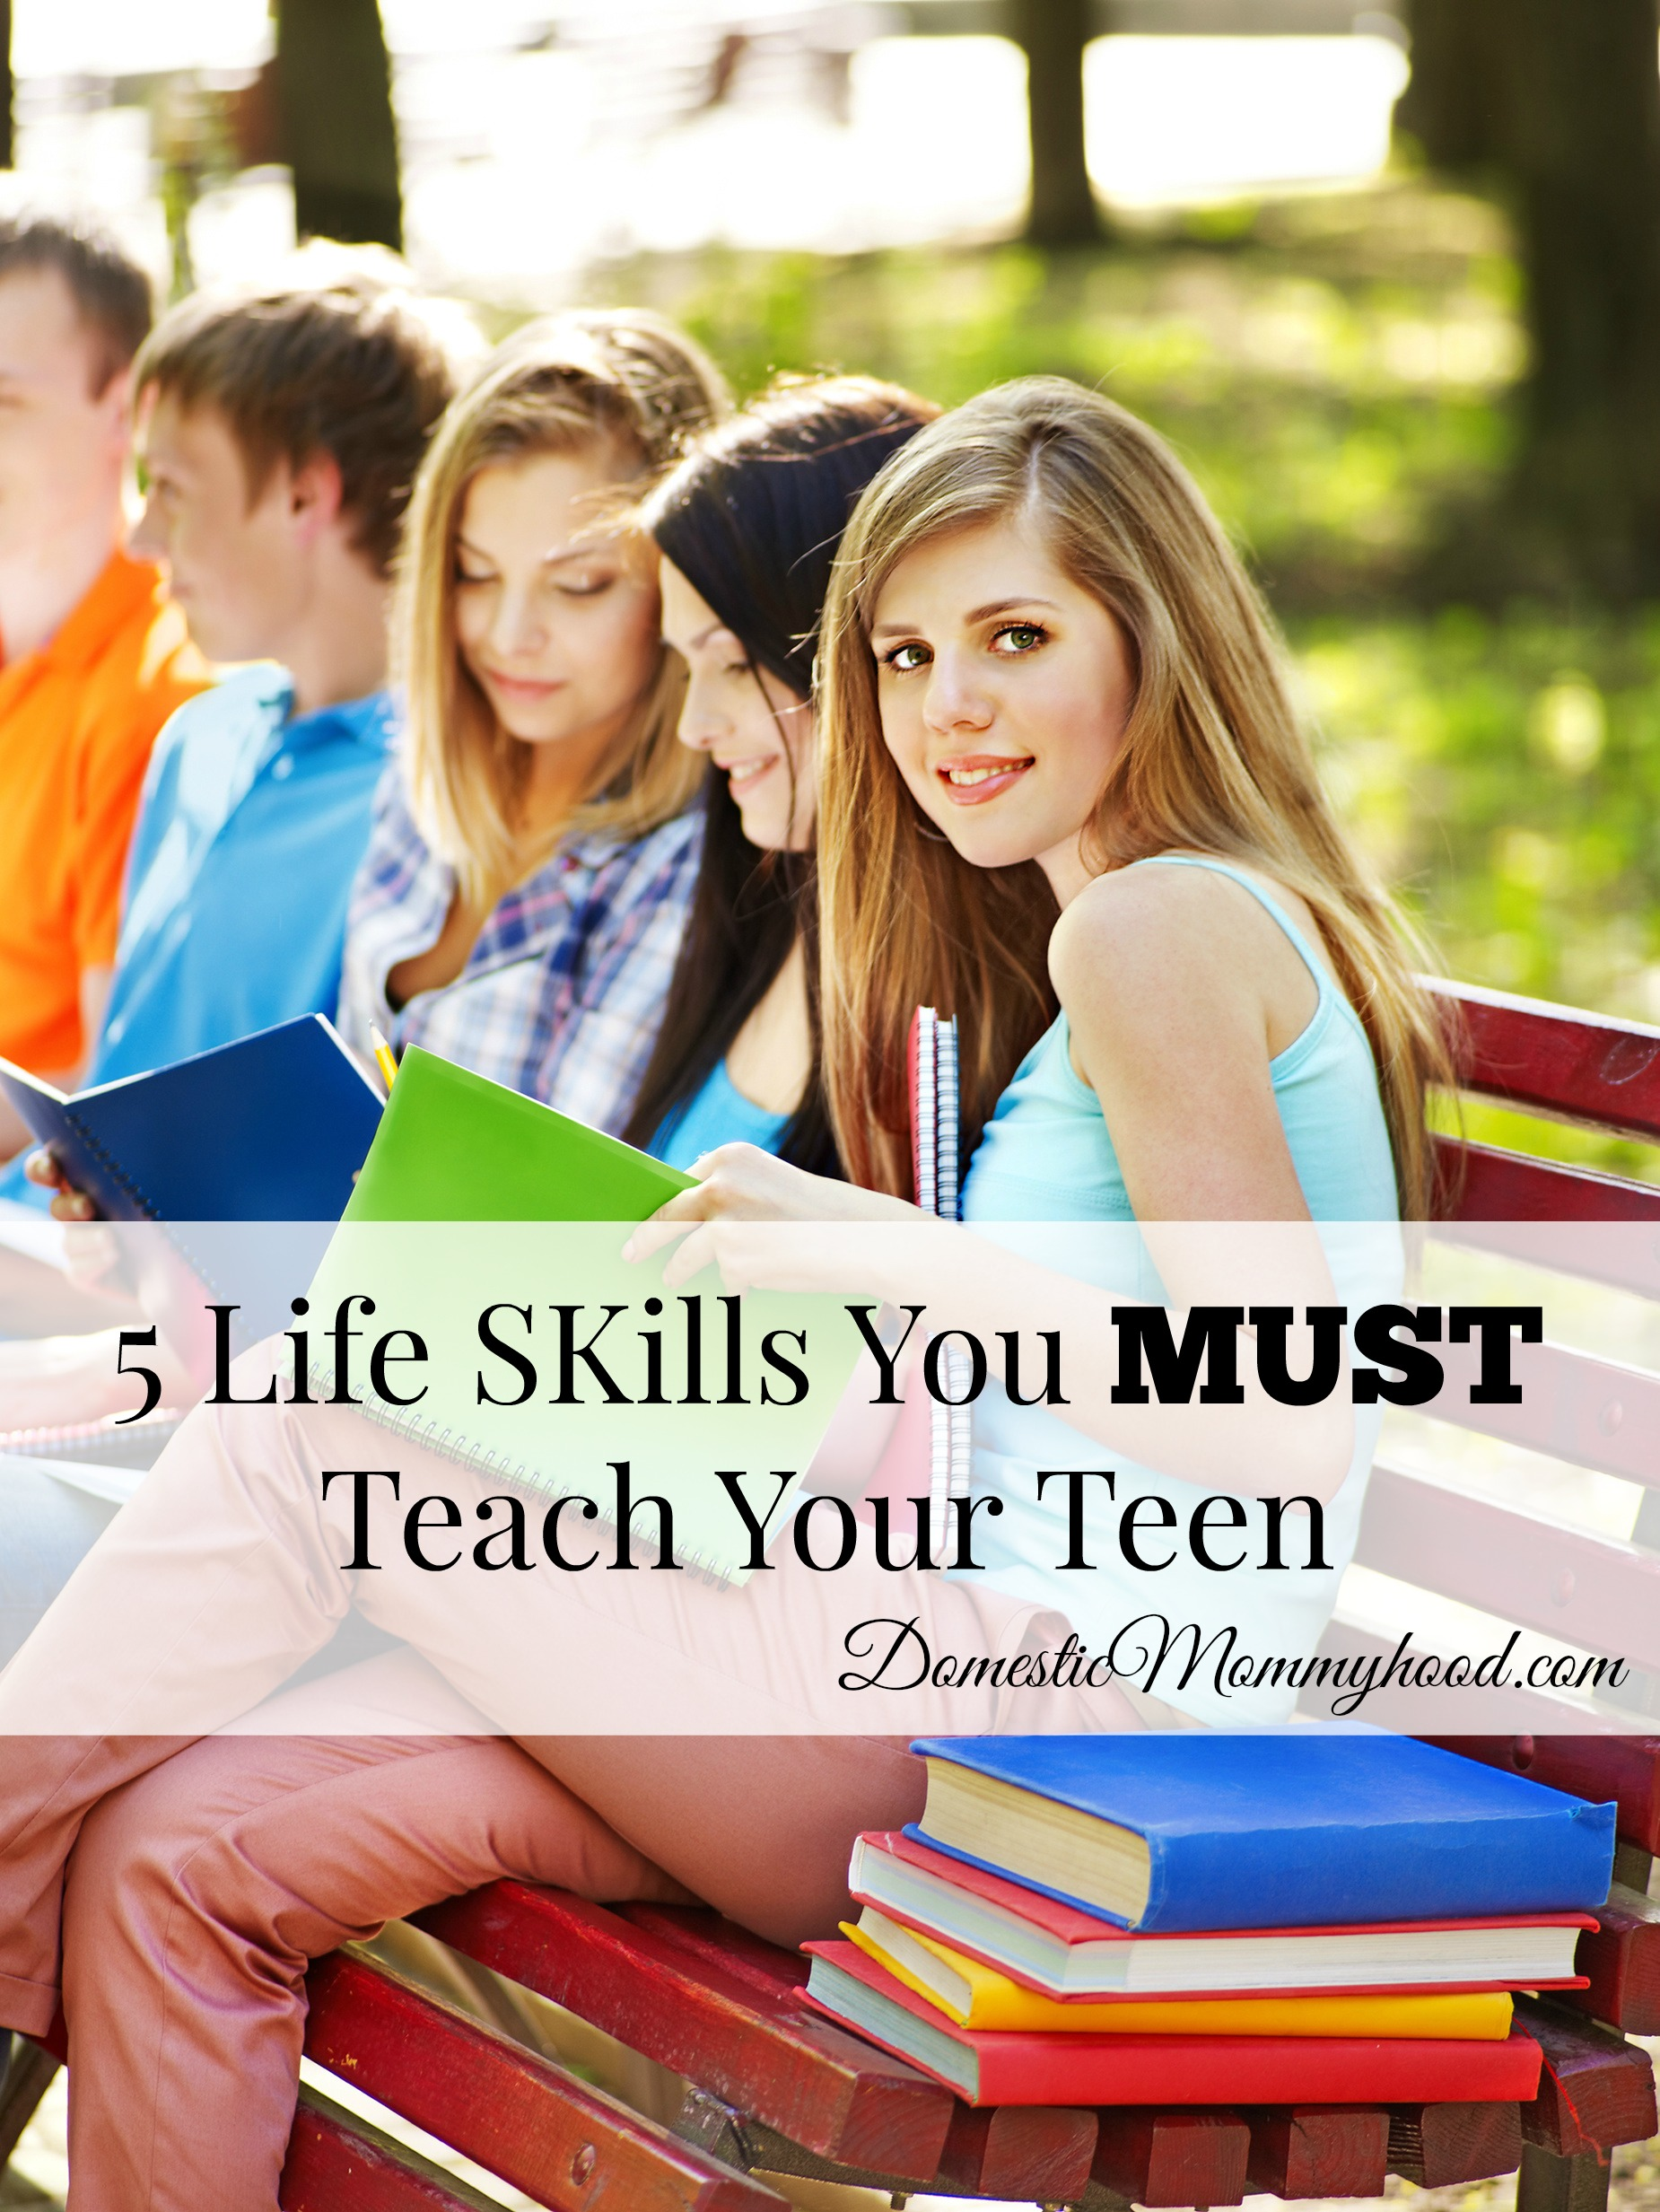 5 Life SKills You MUST Teach Your Teen